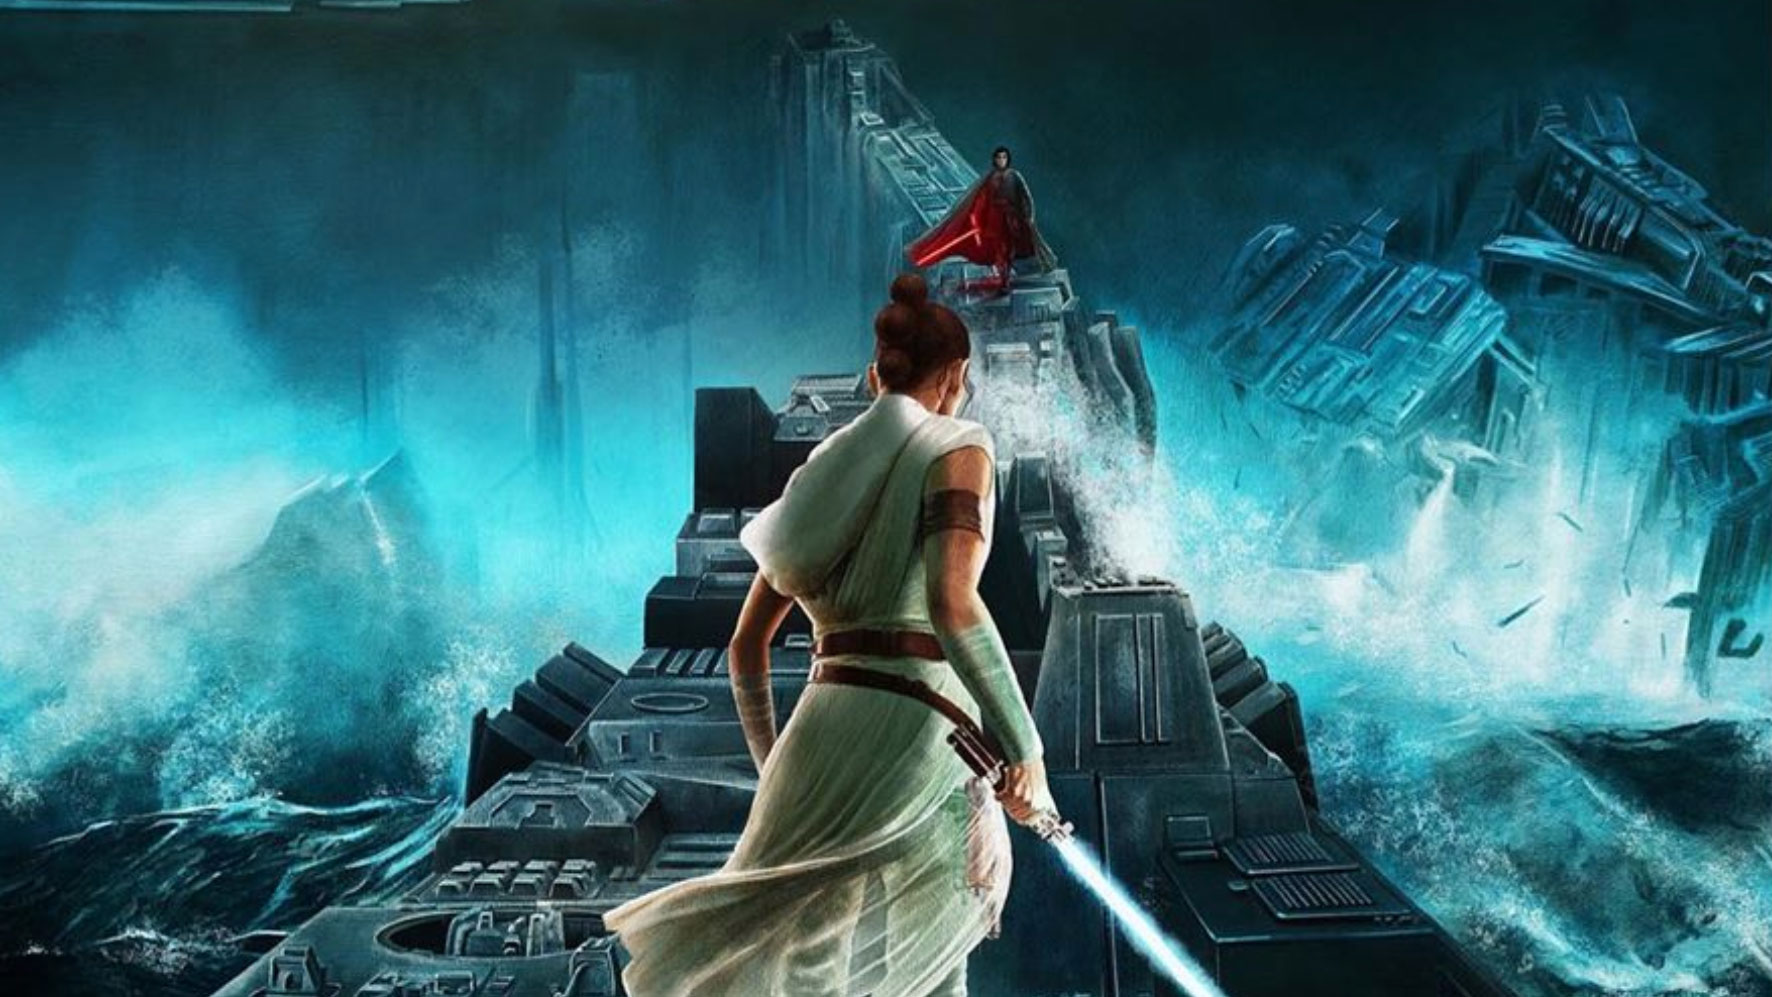 Disney Ups Its Game With Stunning Artist Designed Star Wars Posters Creative Bloq